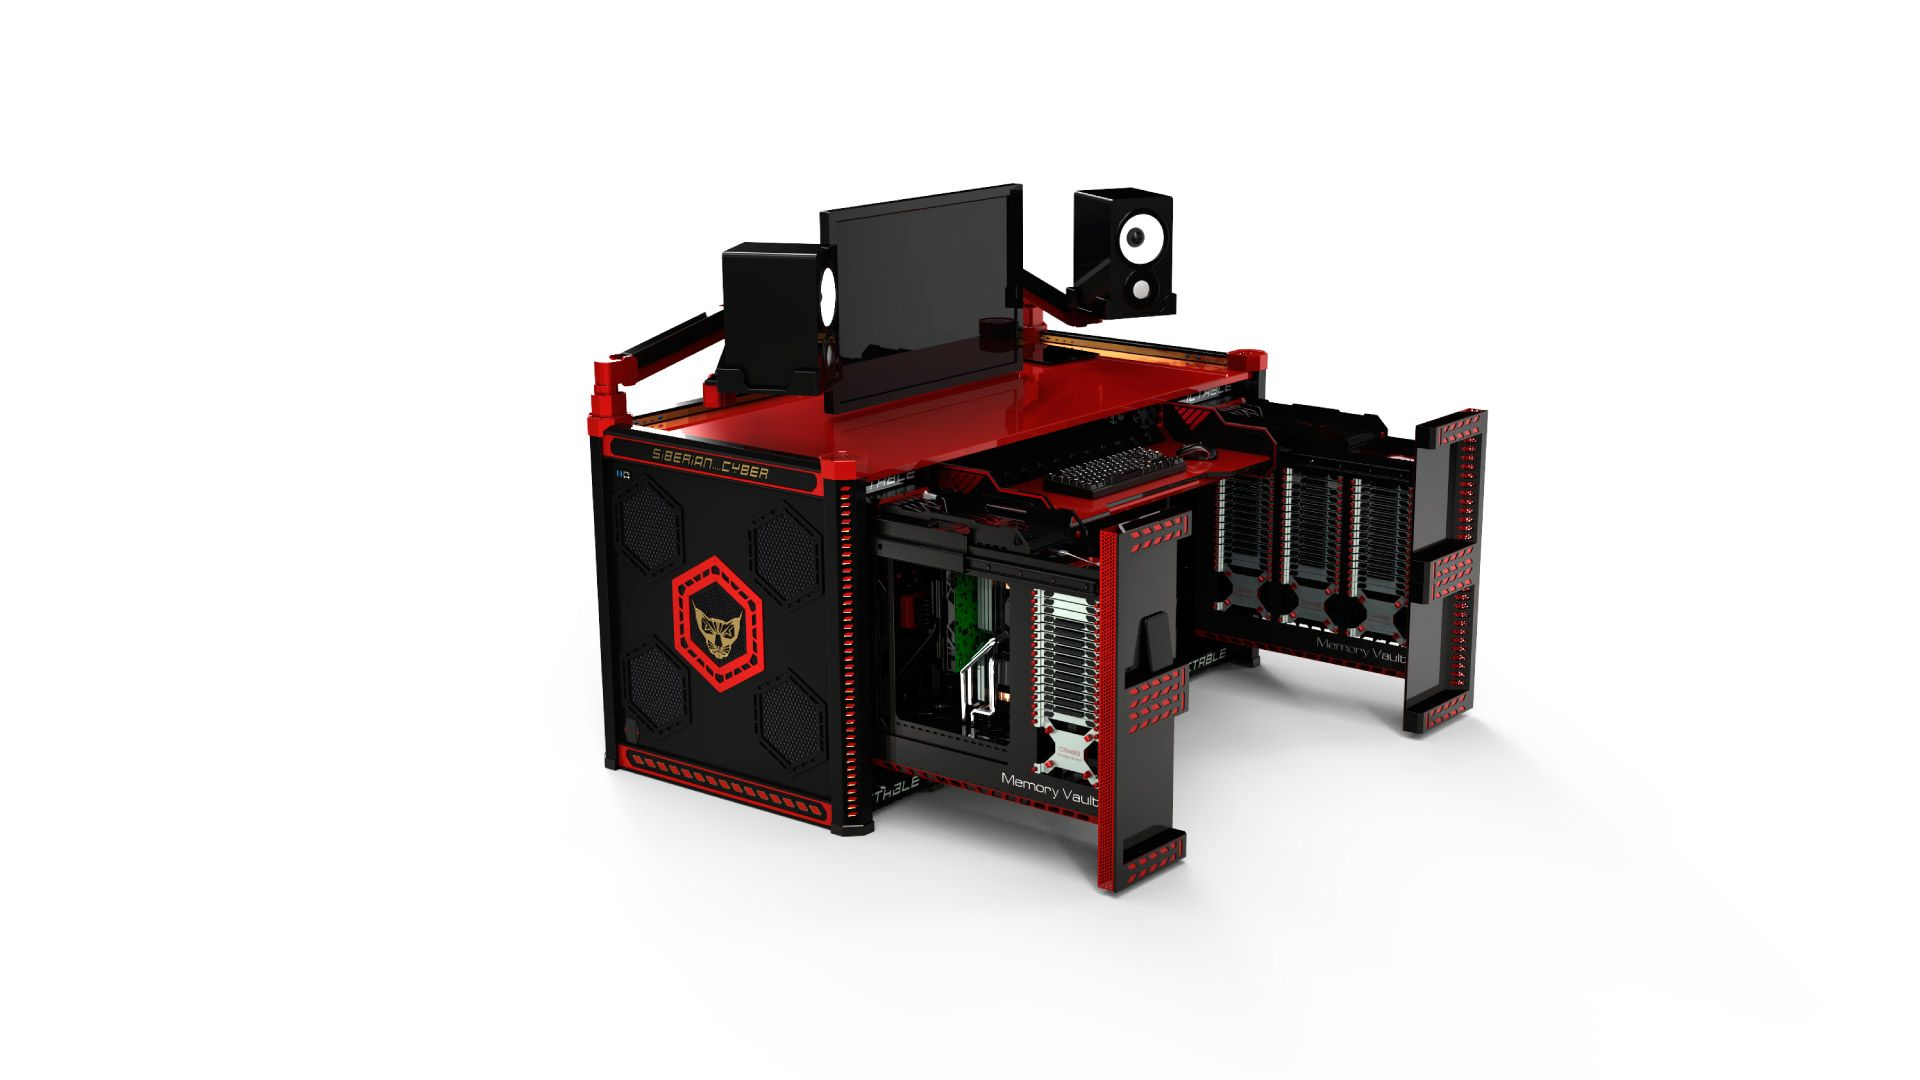 Ictable Is The World S 1st Indesk Computer Table A Modern Powerful Workstation With Extraordinary Ergonomics That